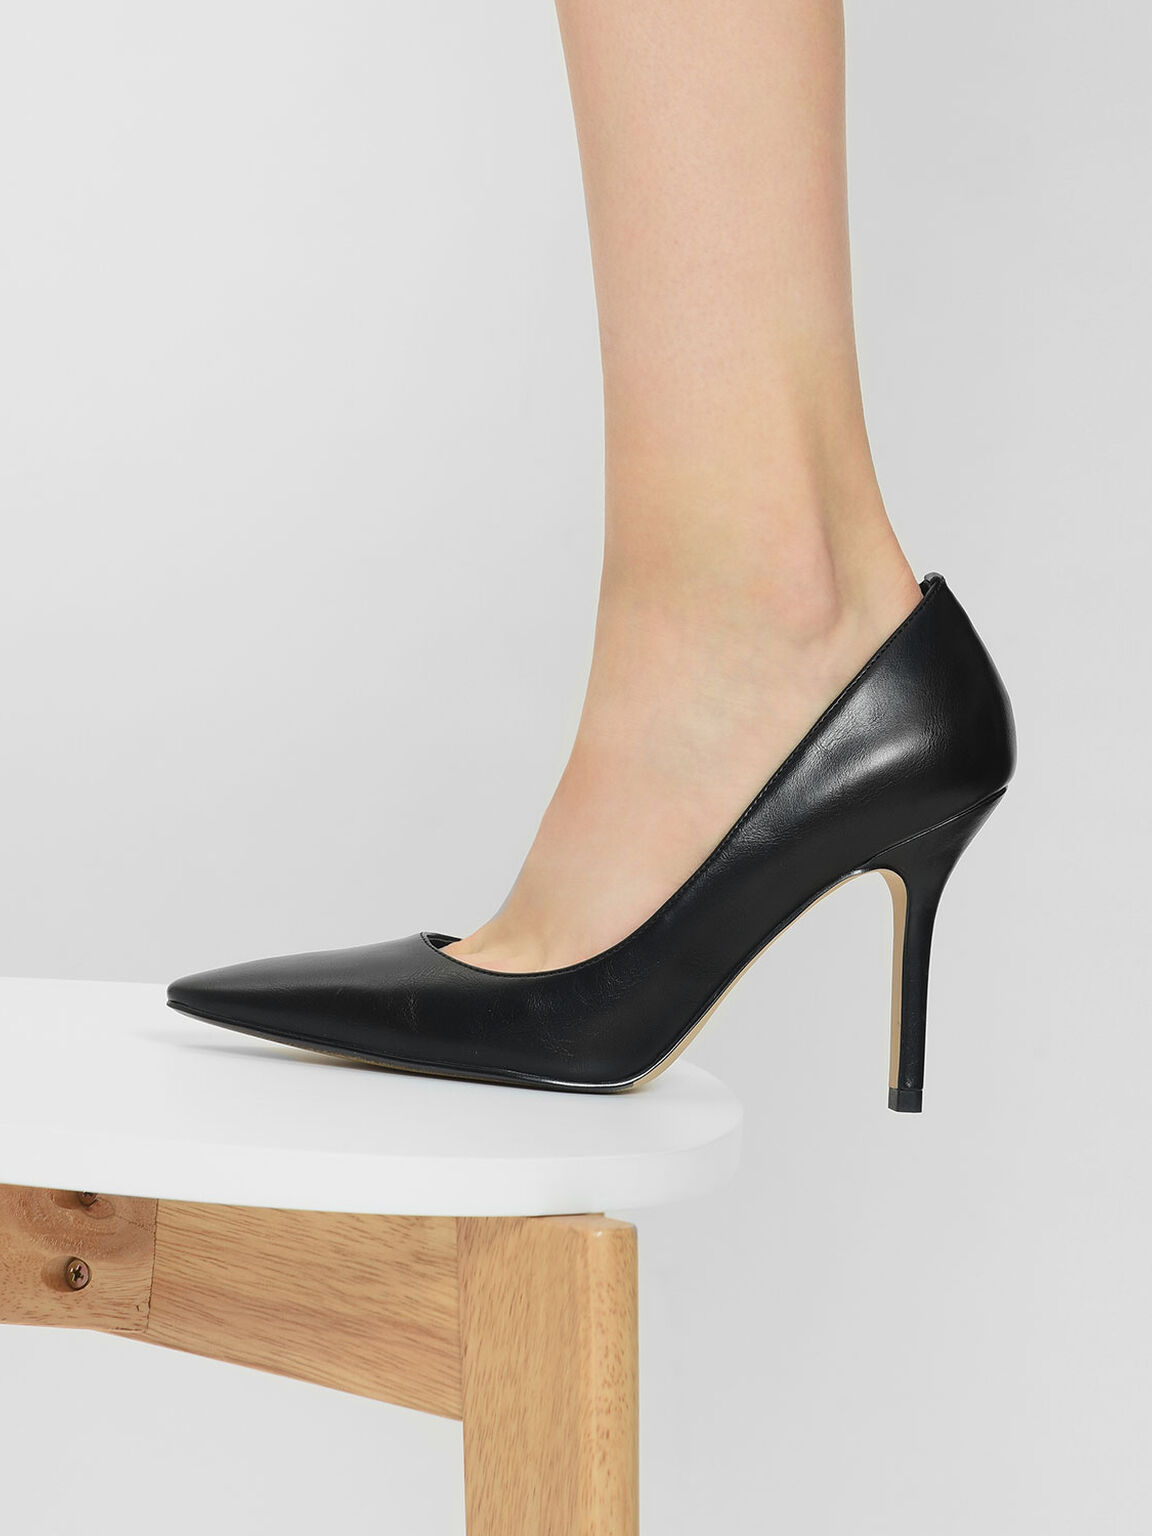 Classic Stiletto Pumps, Black, hi-res